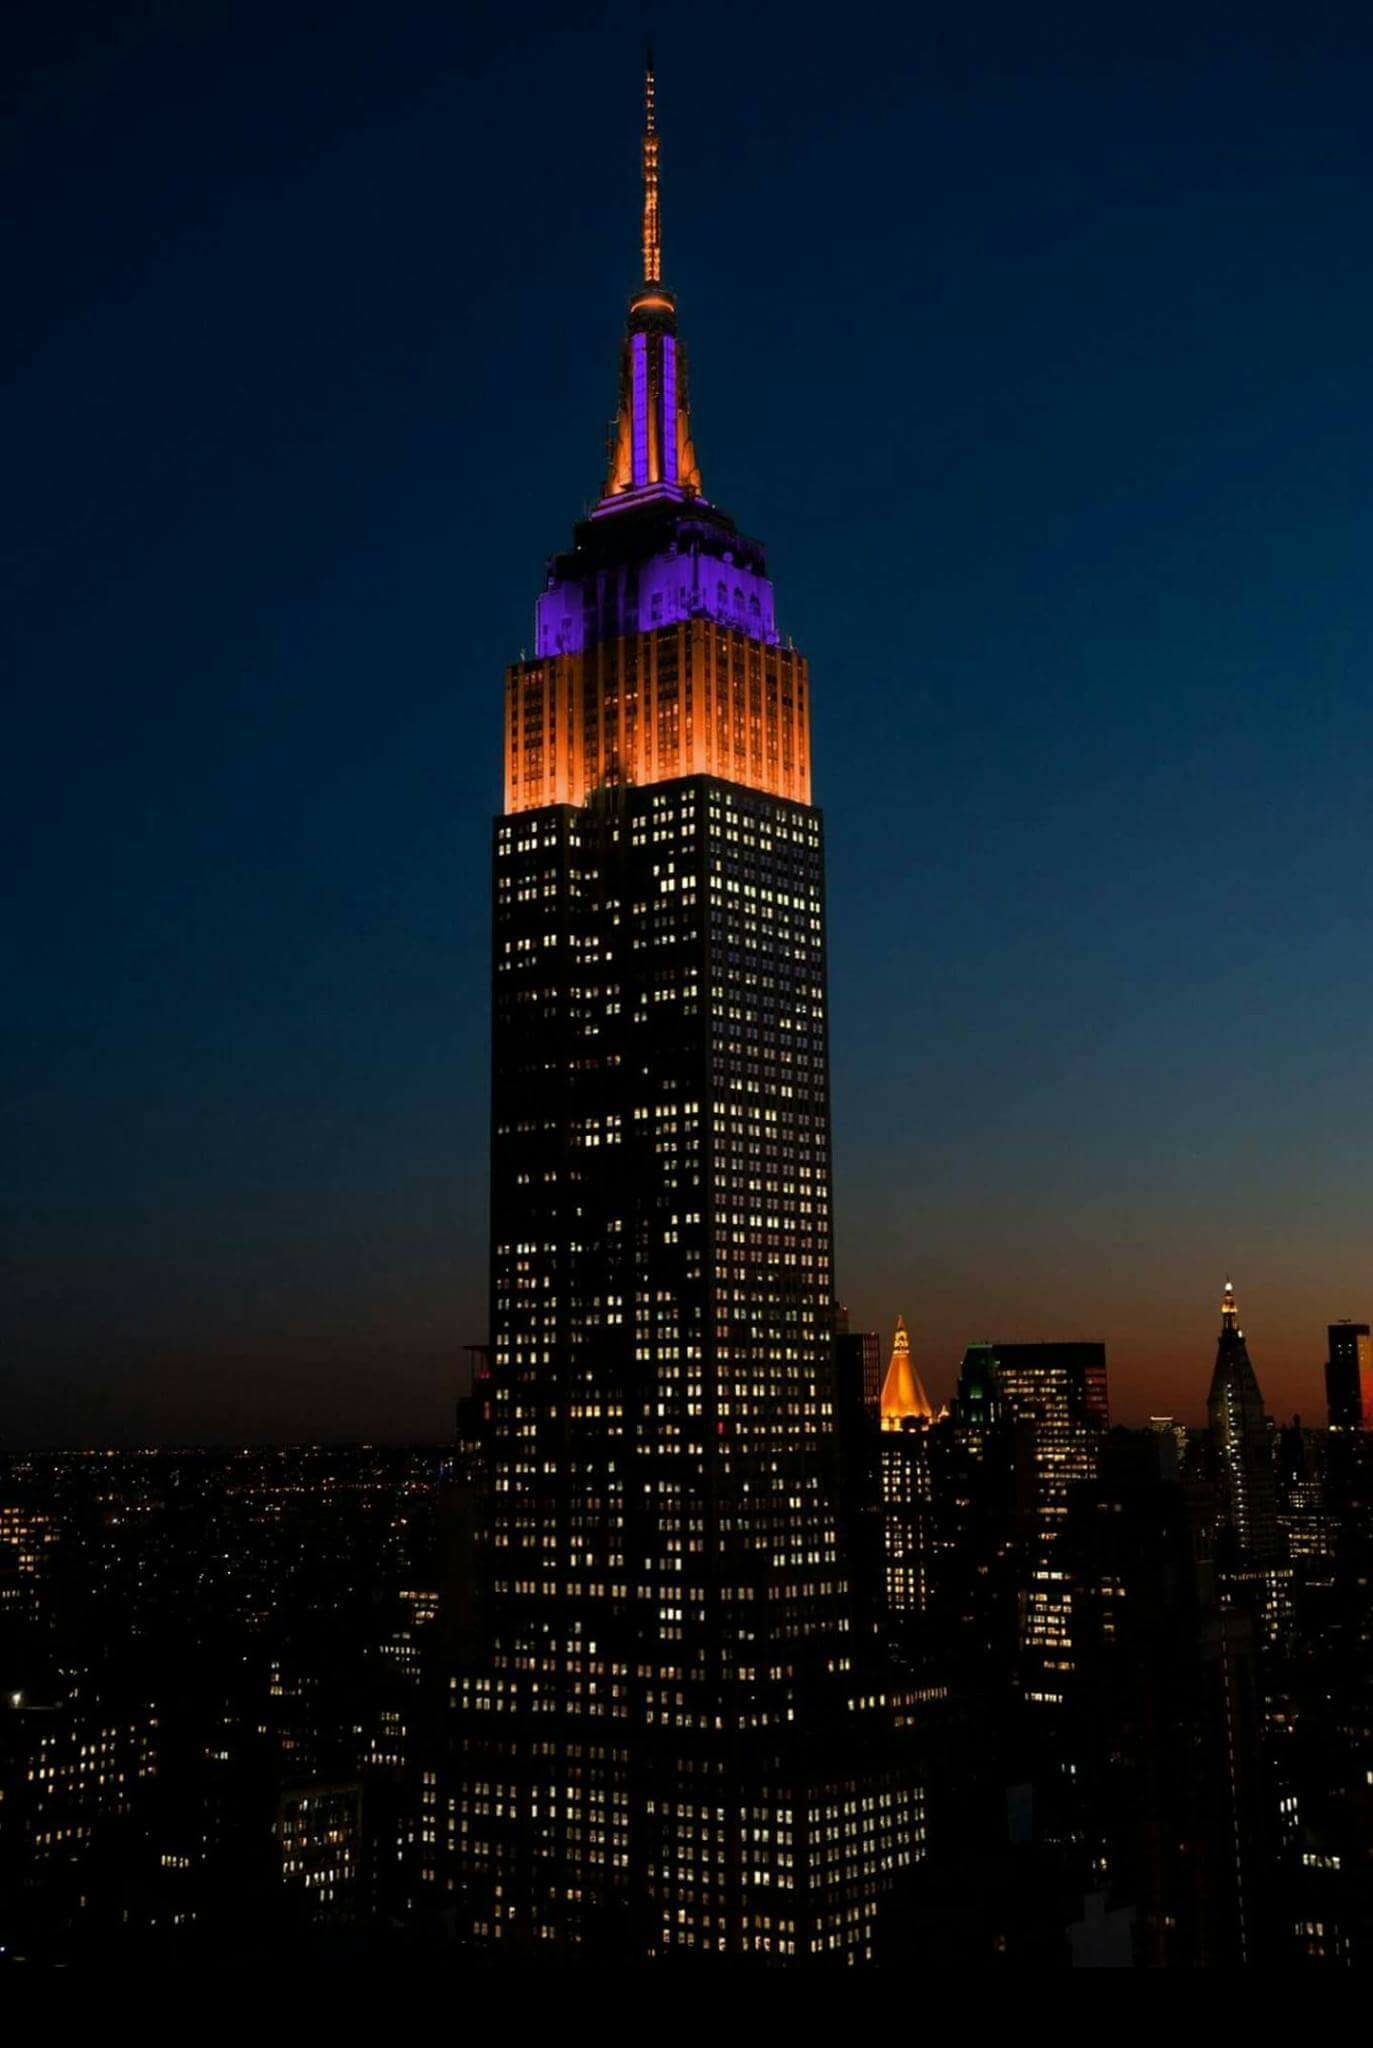 2017 National College Football Champions, the CLEMSON TIGERS!!! Lighting up  the Empire